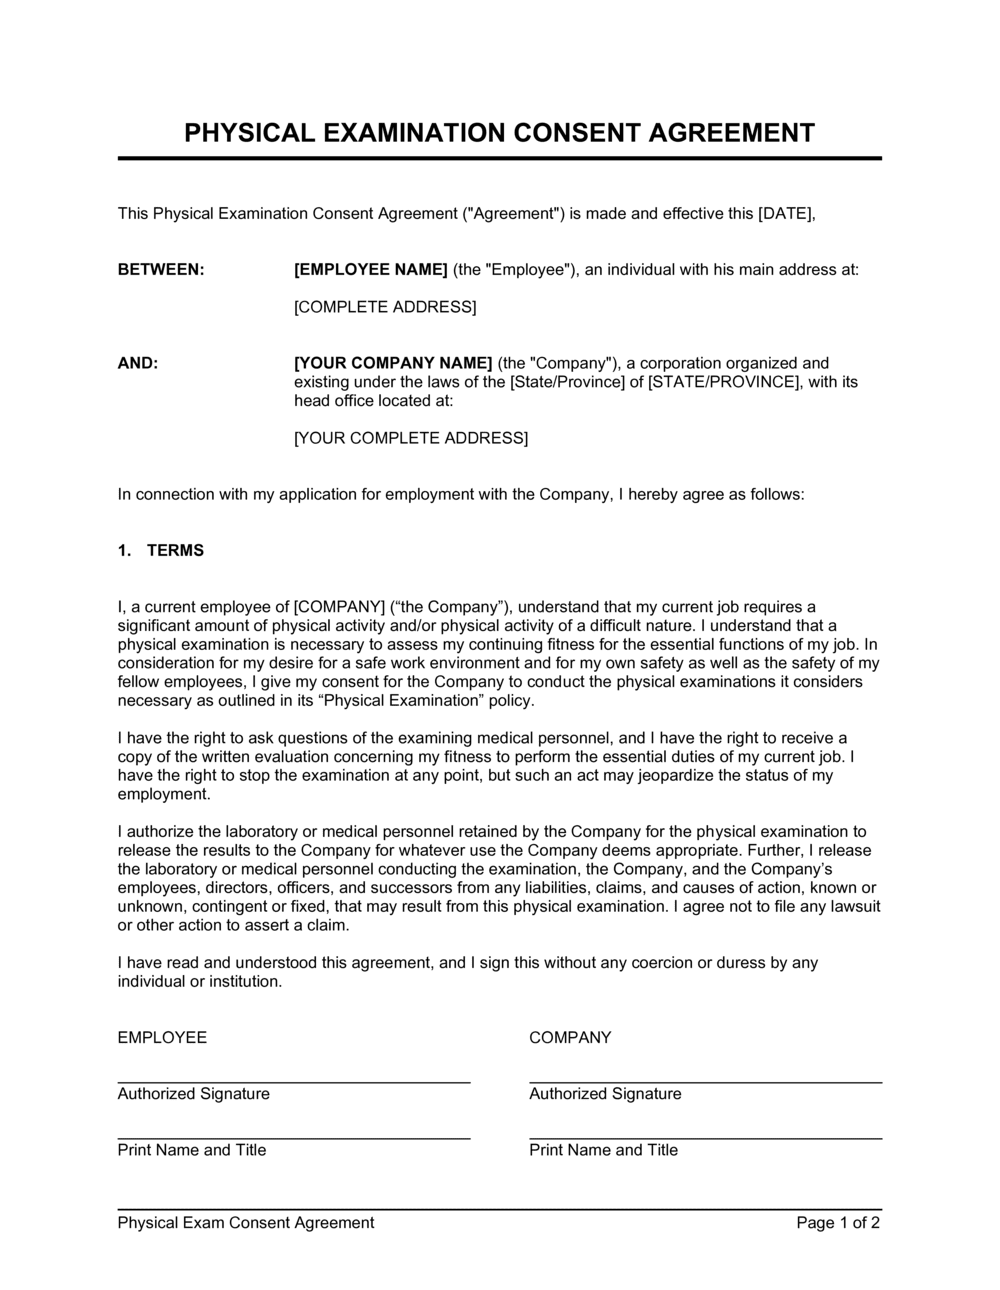 Business-in-a-Box's Physical Exam Consent Template